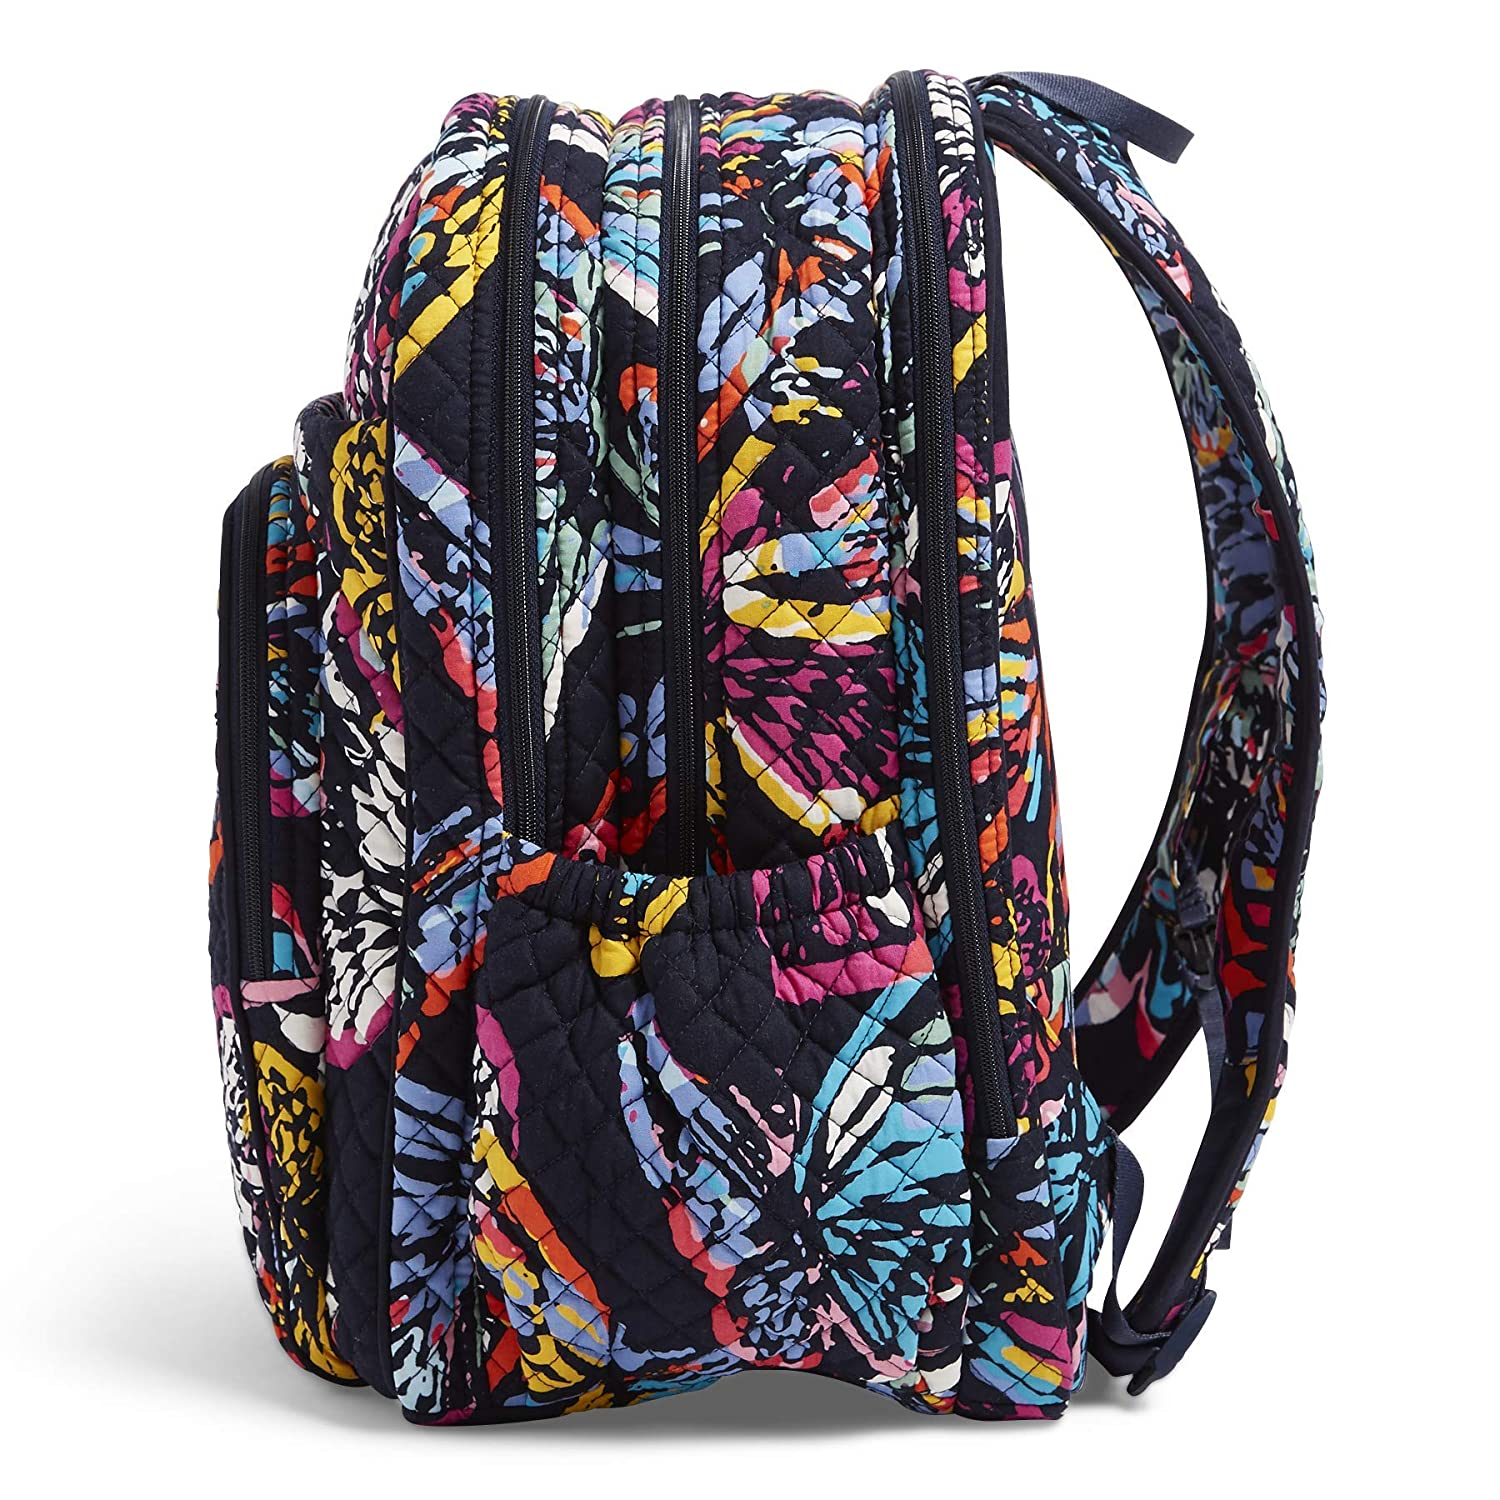 648592b18 Amazon.com: Vera Bradley Iconic XL Campus Backpack, Signature Cotton,  butterfly flutter: Clothing